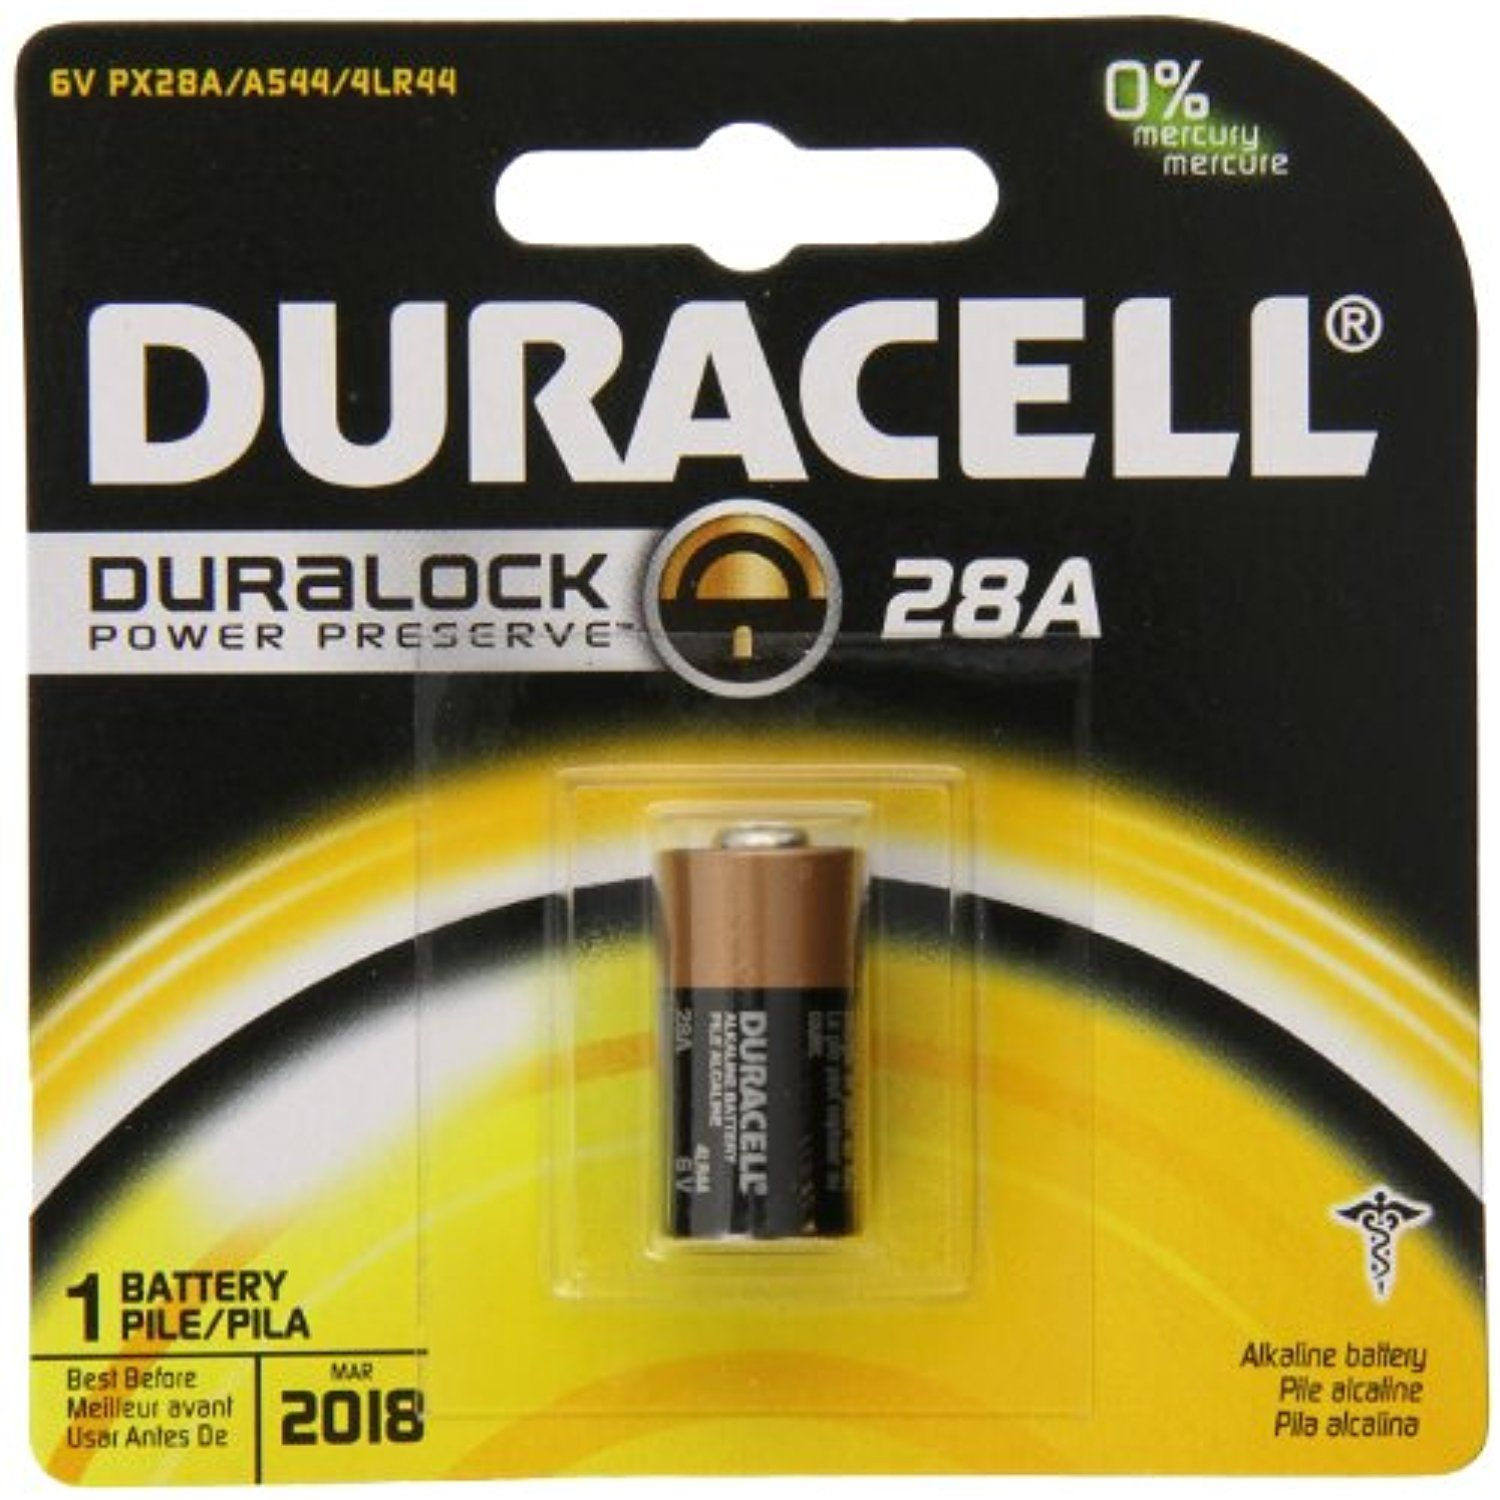 Duracell 28a Medical Battery Pack Of 6 You Can Find More Details By Visiting The Image Link This Is An Affi Duracell Alkaline Battery Battery Disposal